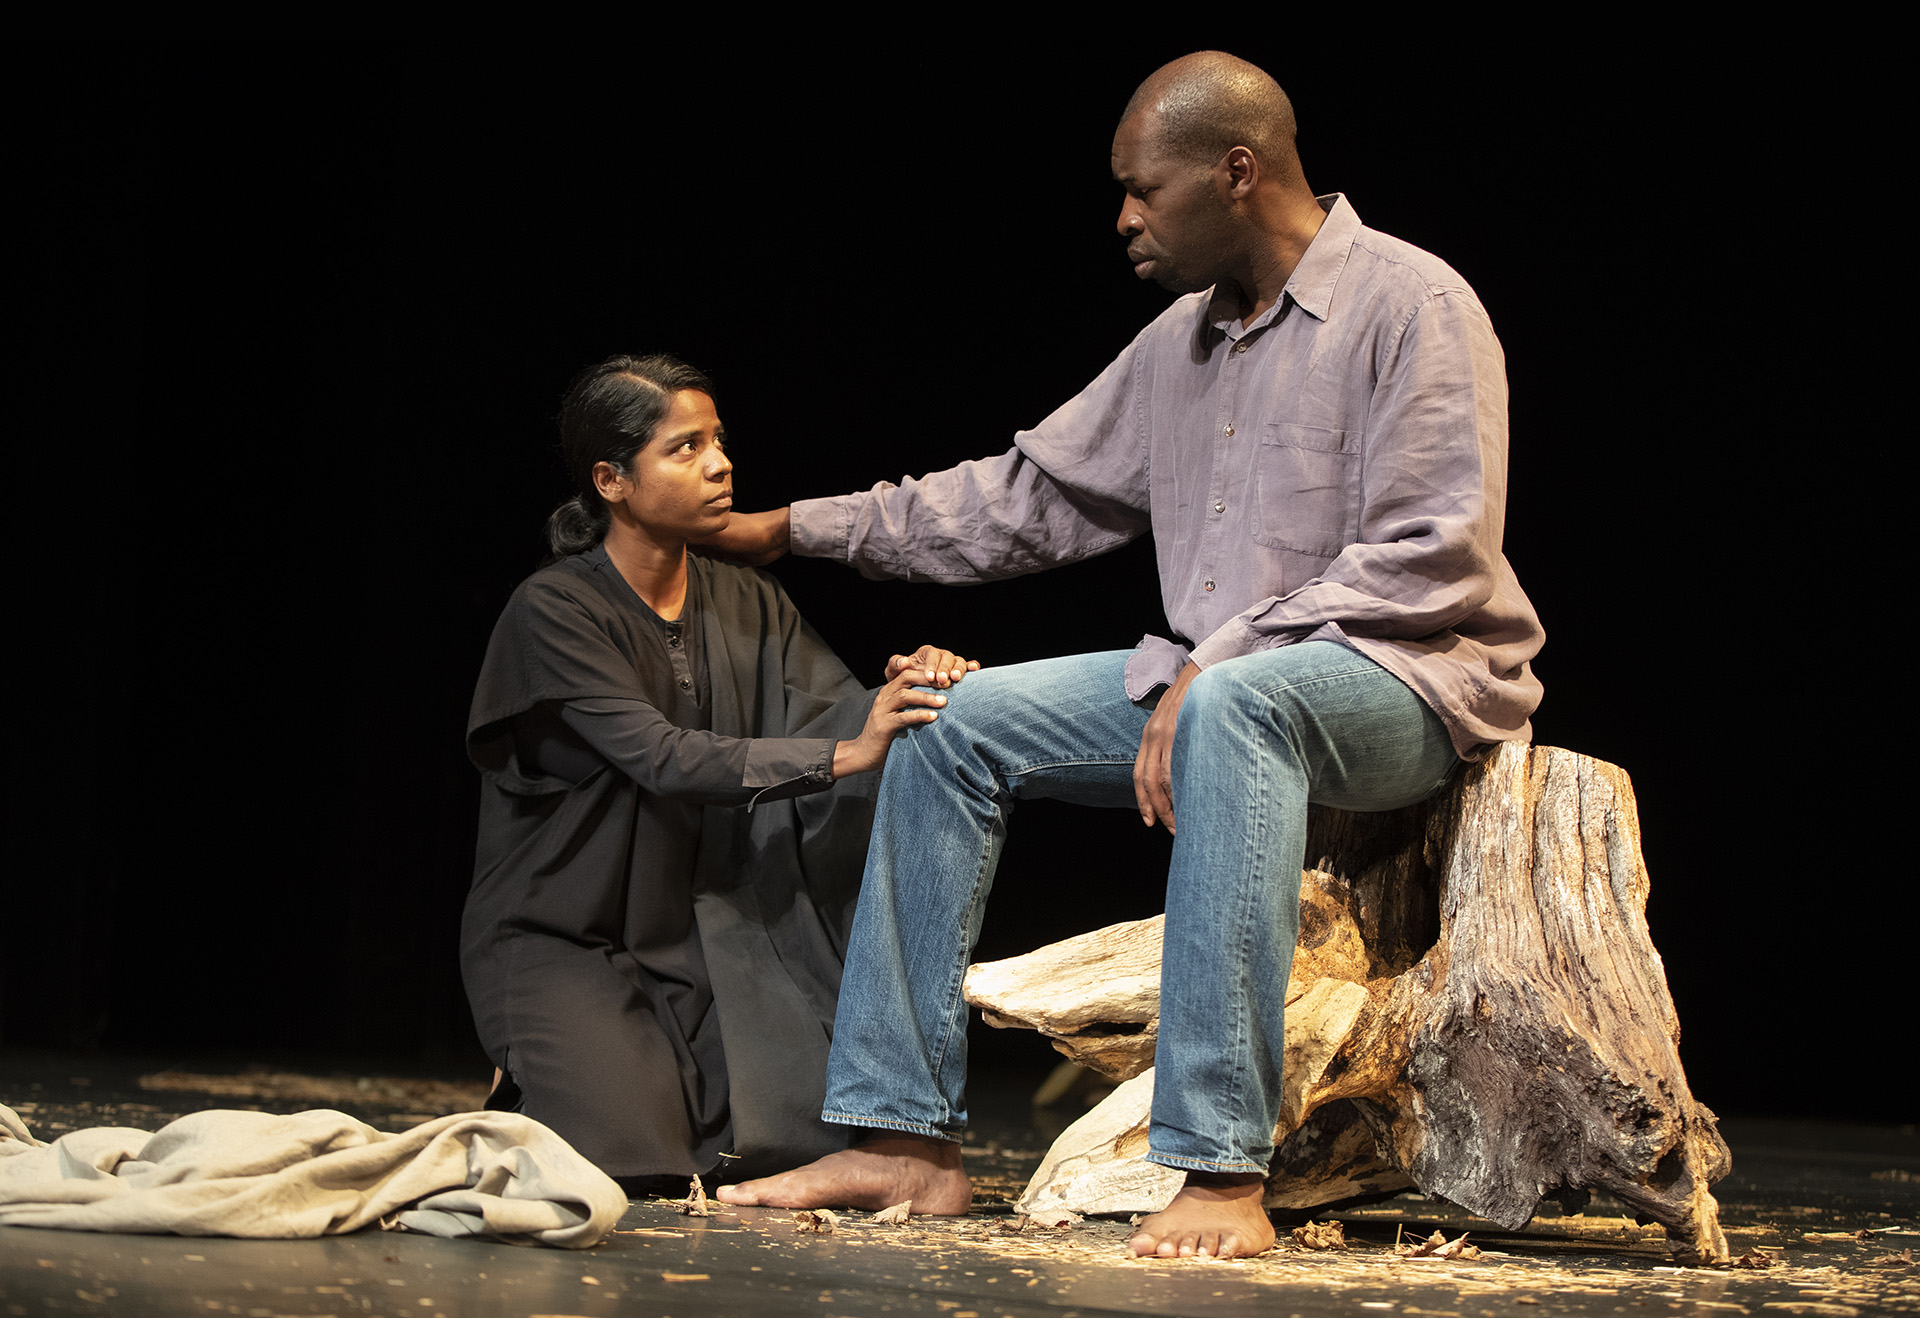 Kalieaswari Srinivasan as Nadia & Hervé Goffings as Ezekiel in Peter Brook's   The Prisoner   at  the Theatre for a New Audience  in New York. Photo: Joan Marcus.